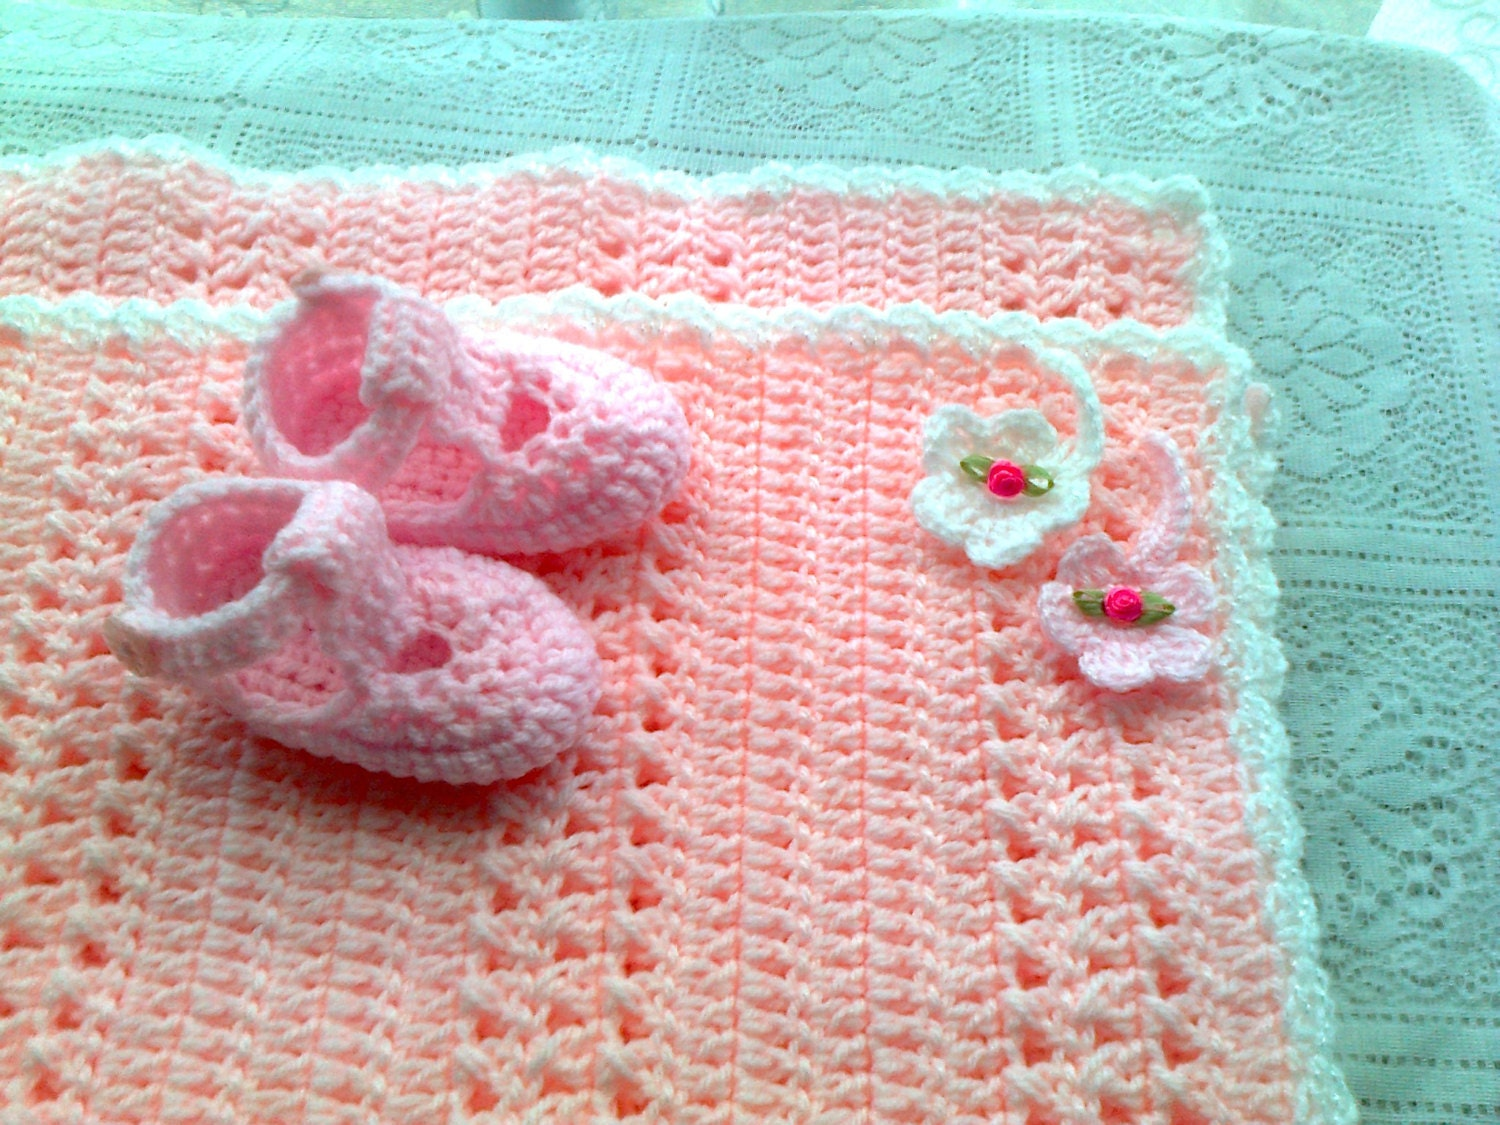 Crochet Baby Blanket Patterns Popcorn Stitch : PDF crochet baby pram blanket pattern